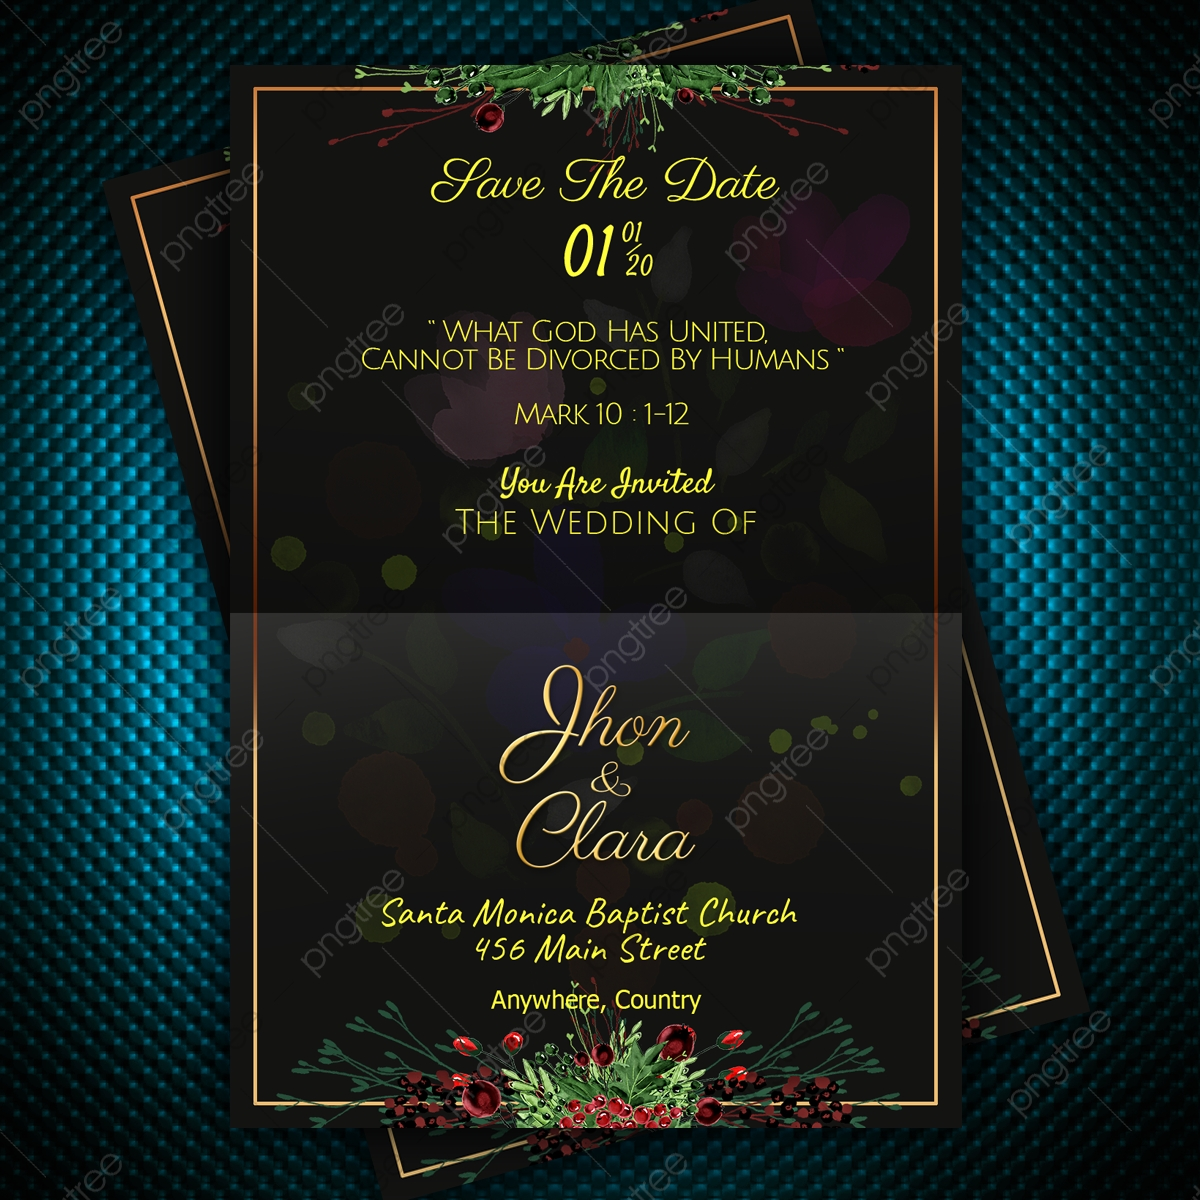 Simple Elegant Design Wedding Invitation Card With Yellow Text In Dark Background Template For Free Download On Pngtree